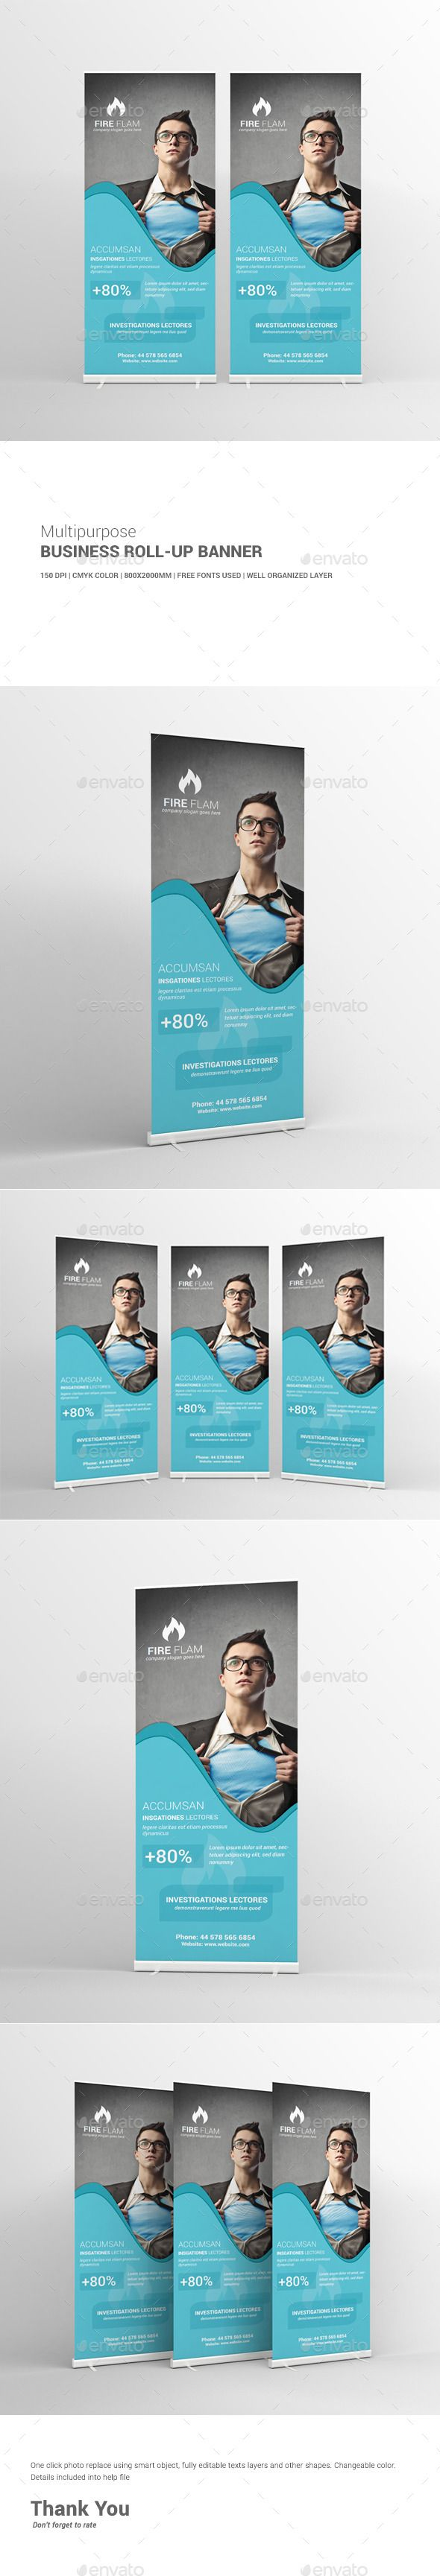 52 best templates banners images on pinterest banner template multipurpose business roll up banner template design download httpgraphicriver flashek Choice Image